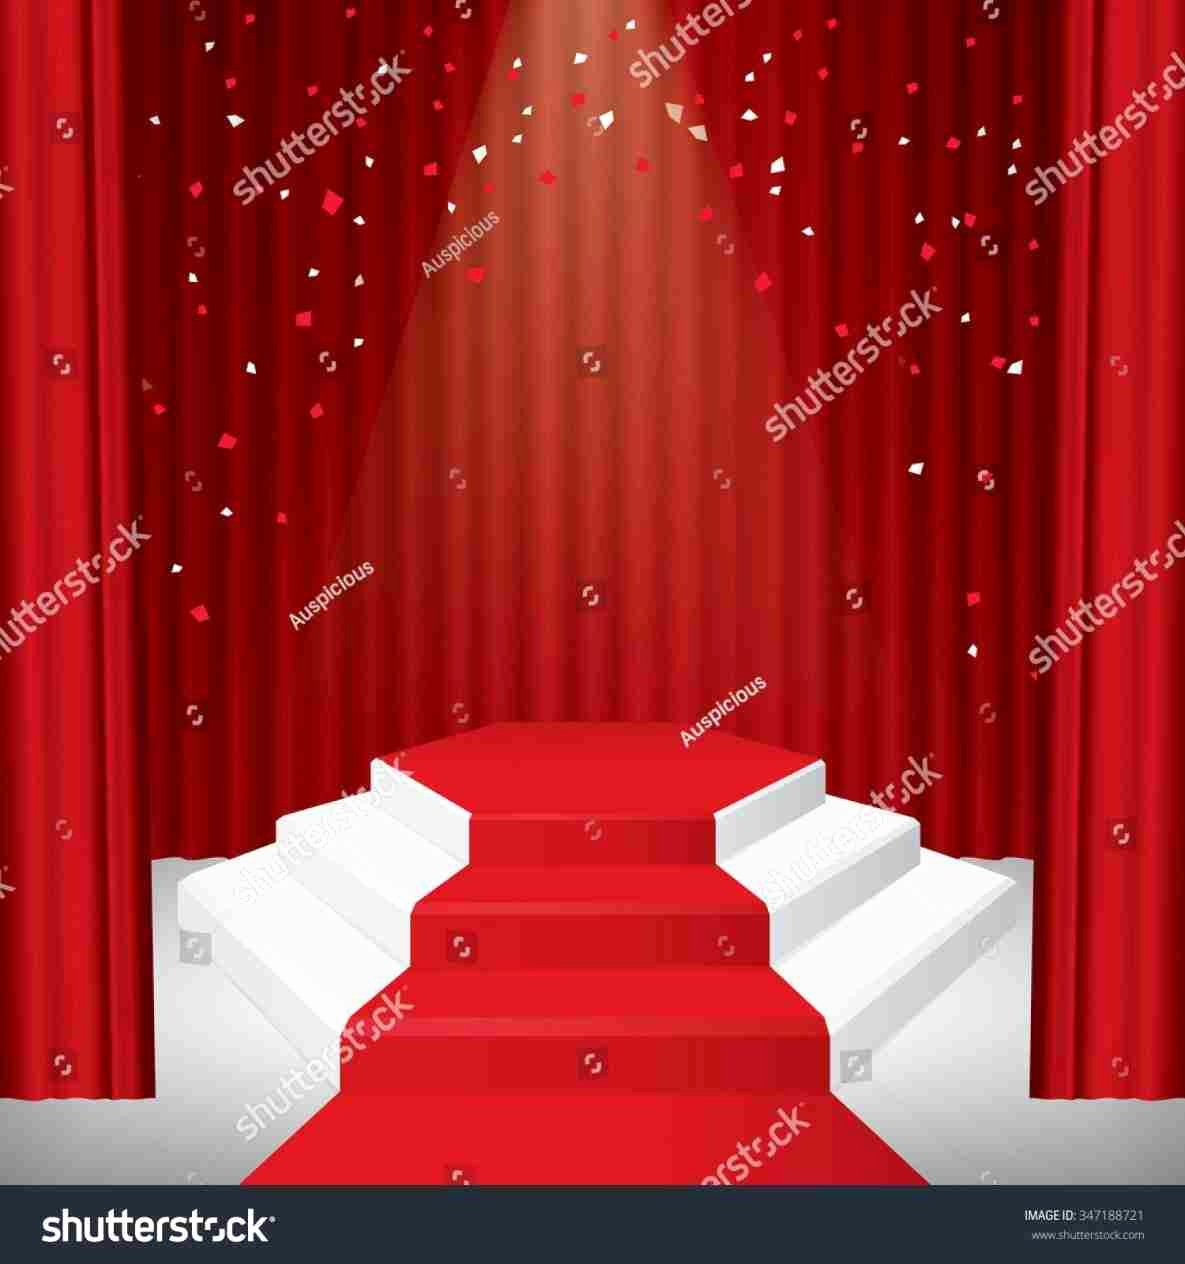 Red Carpet Backdrop Template Lovely Booths Award Show Background Loop Motion Videoblocks Award